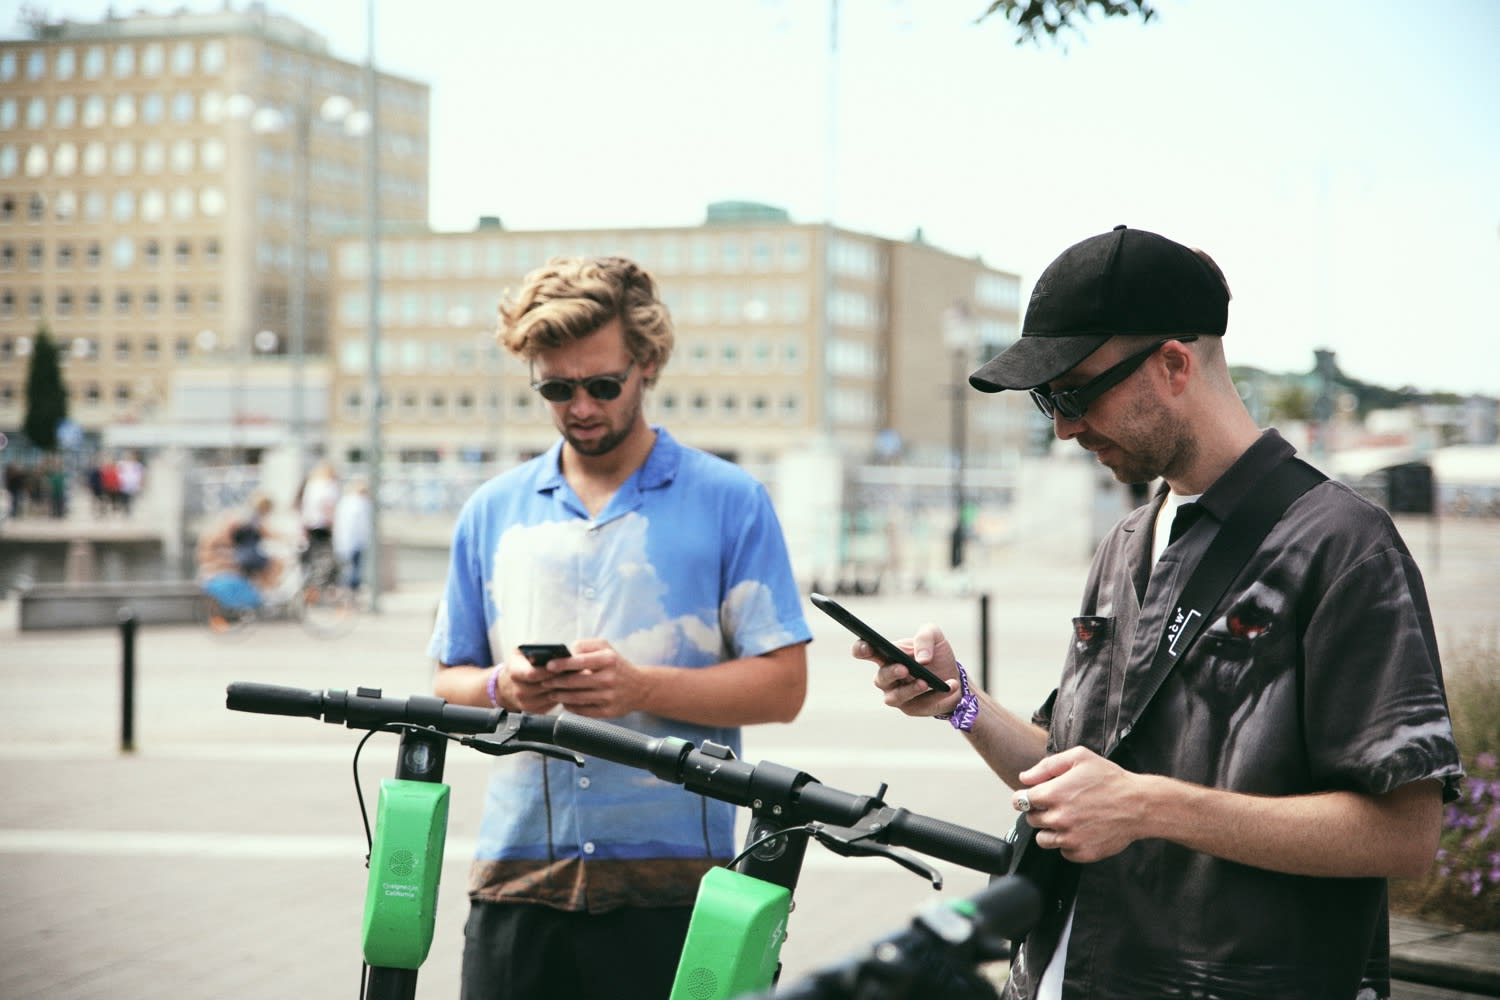 Max Svardh and Albin Johansson of Axel Arigato booking out Lime Scooters in Gothenburg - Axel Arigato City Guide Gothenburg